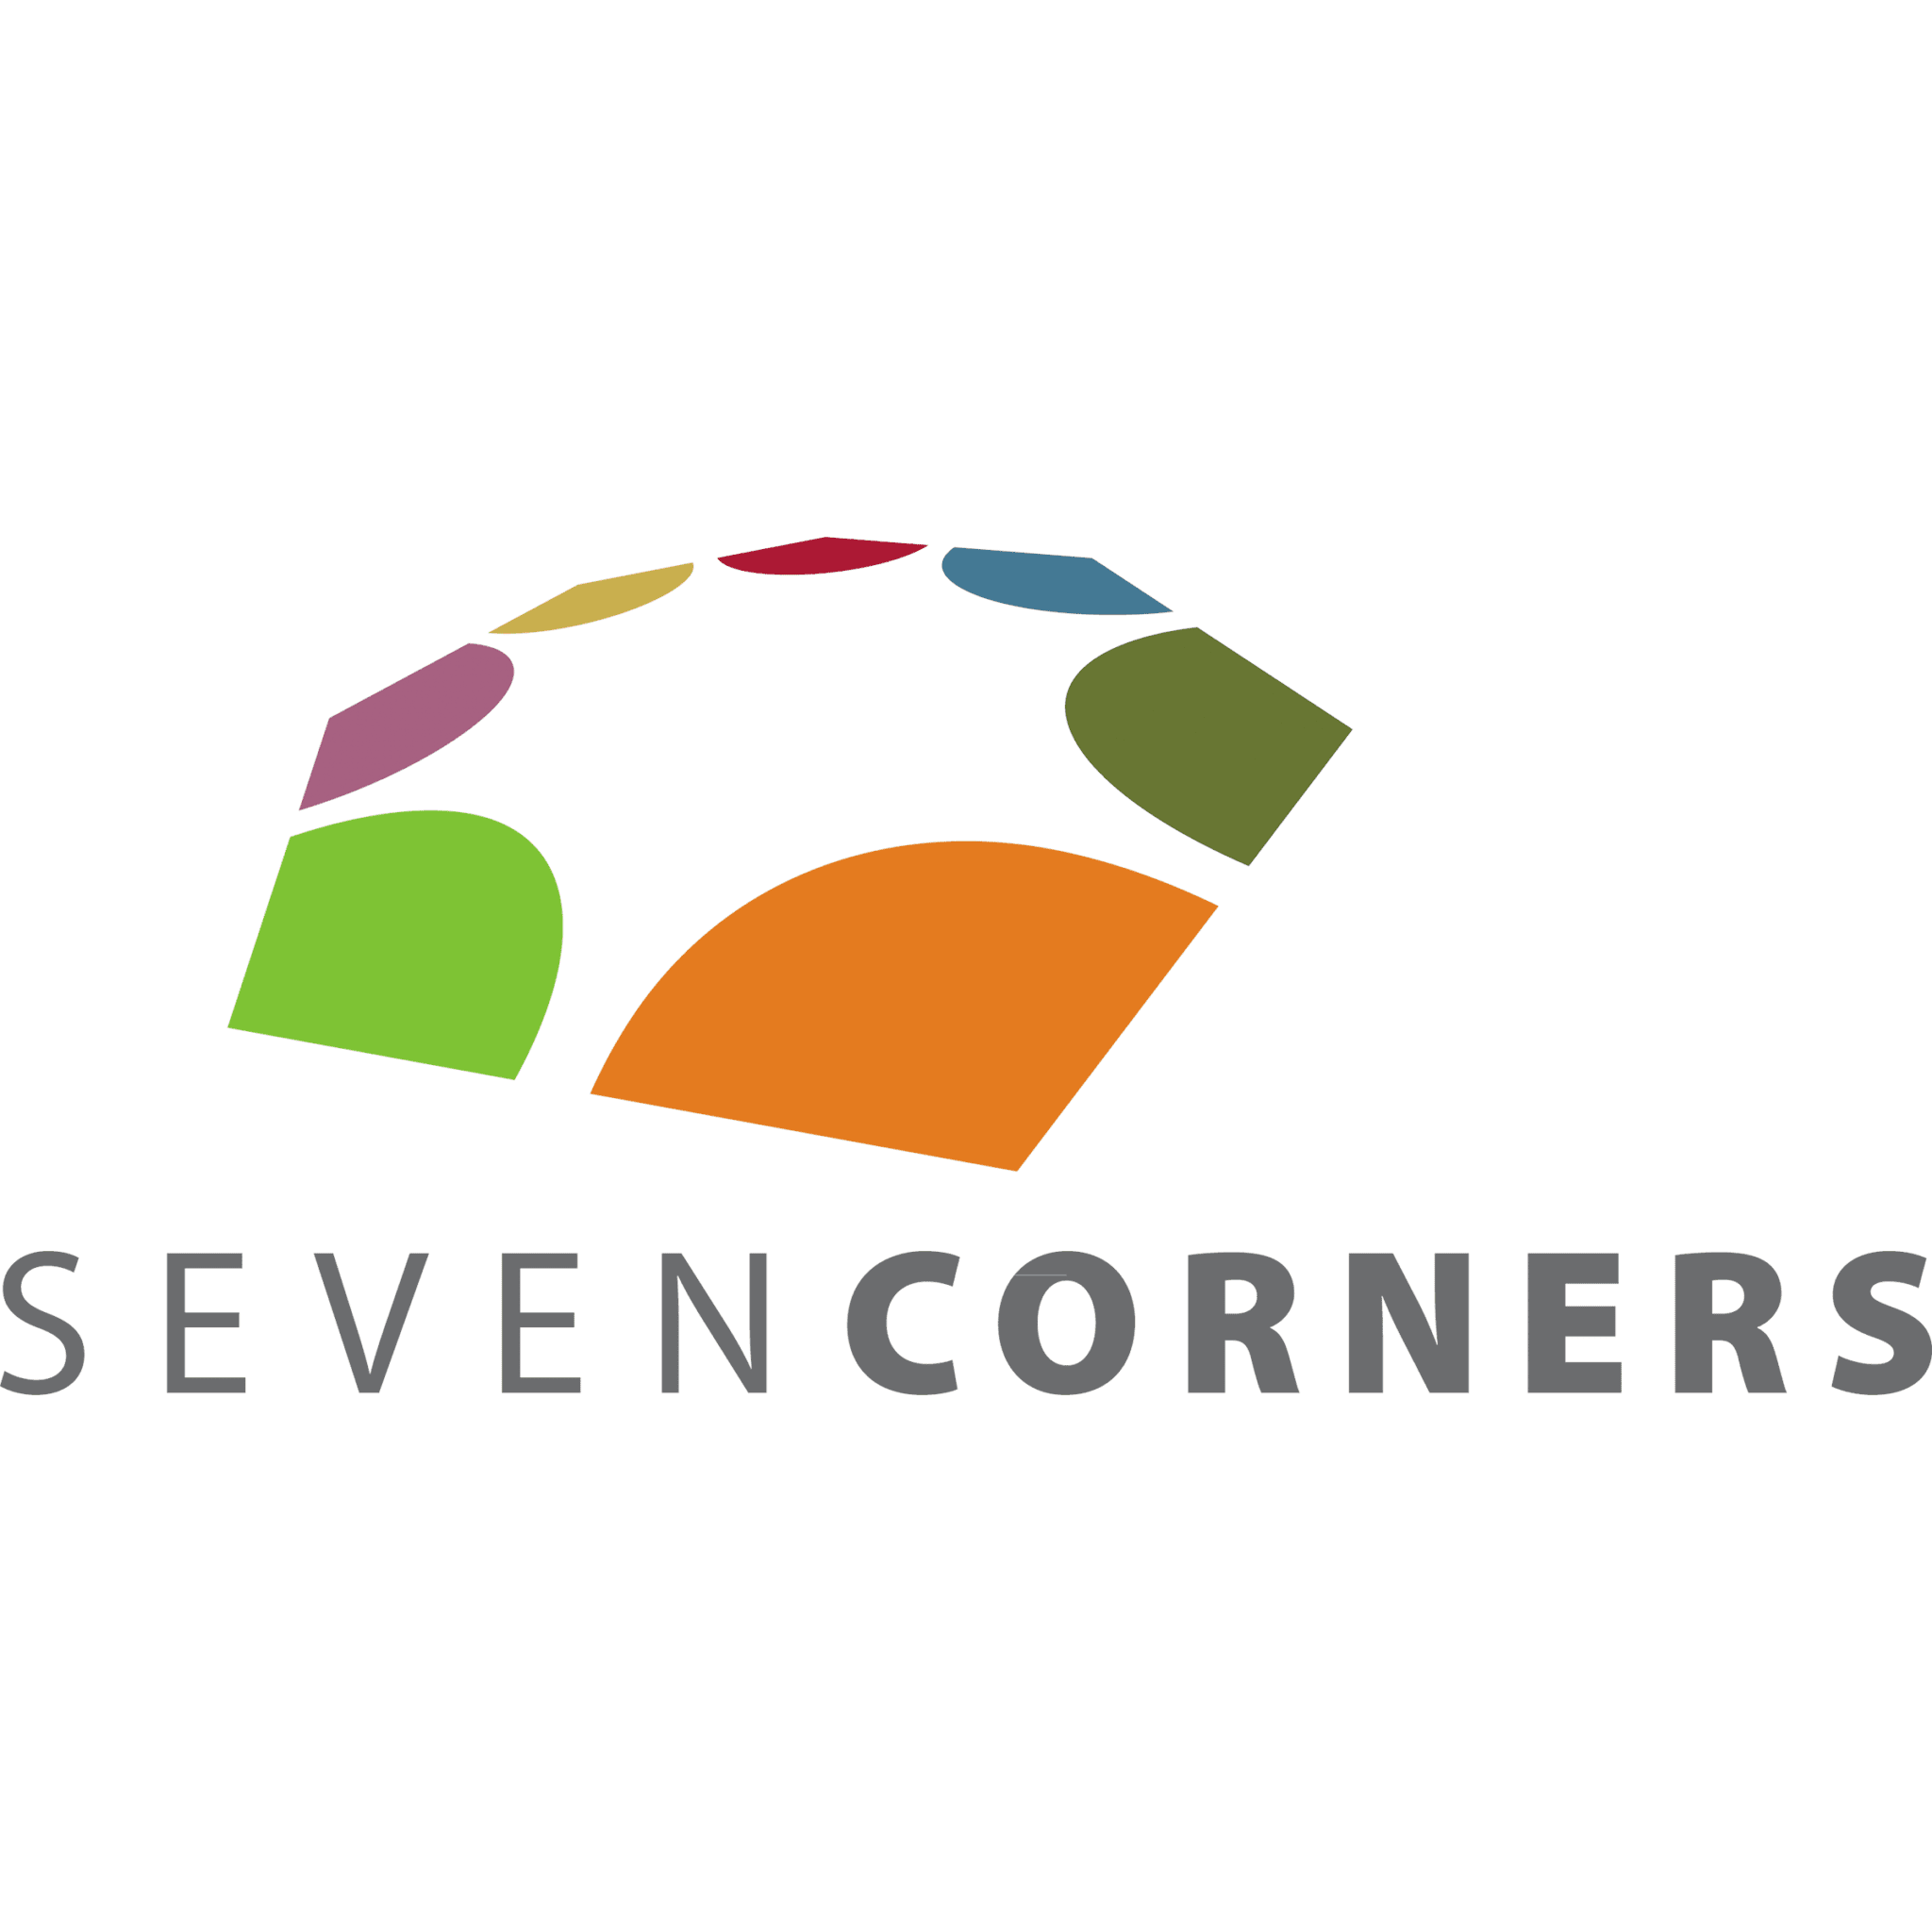 Seven Corners carrier logo